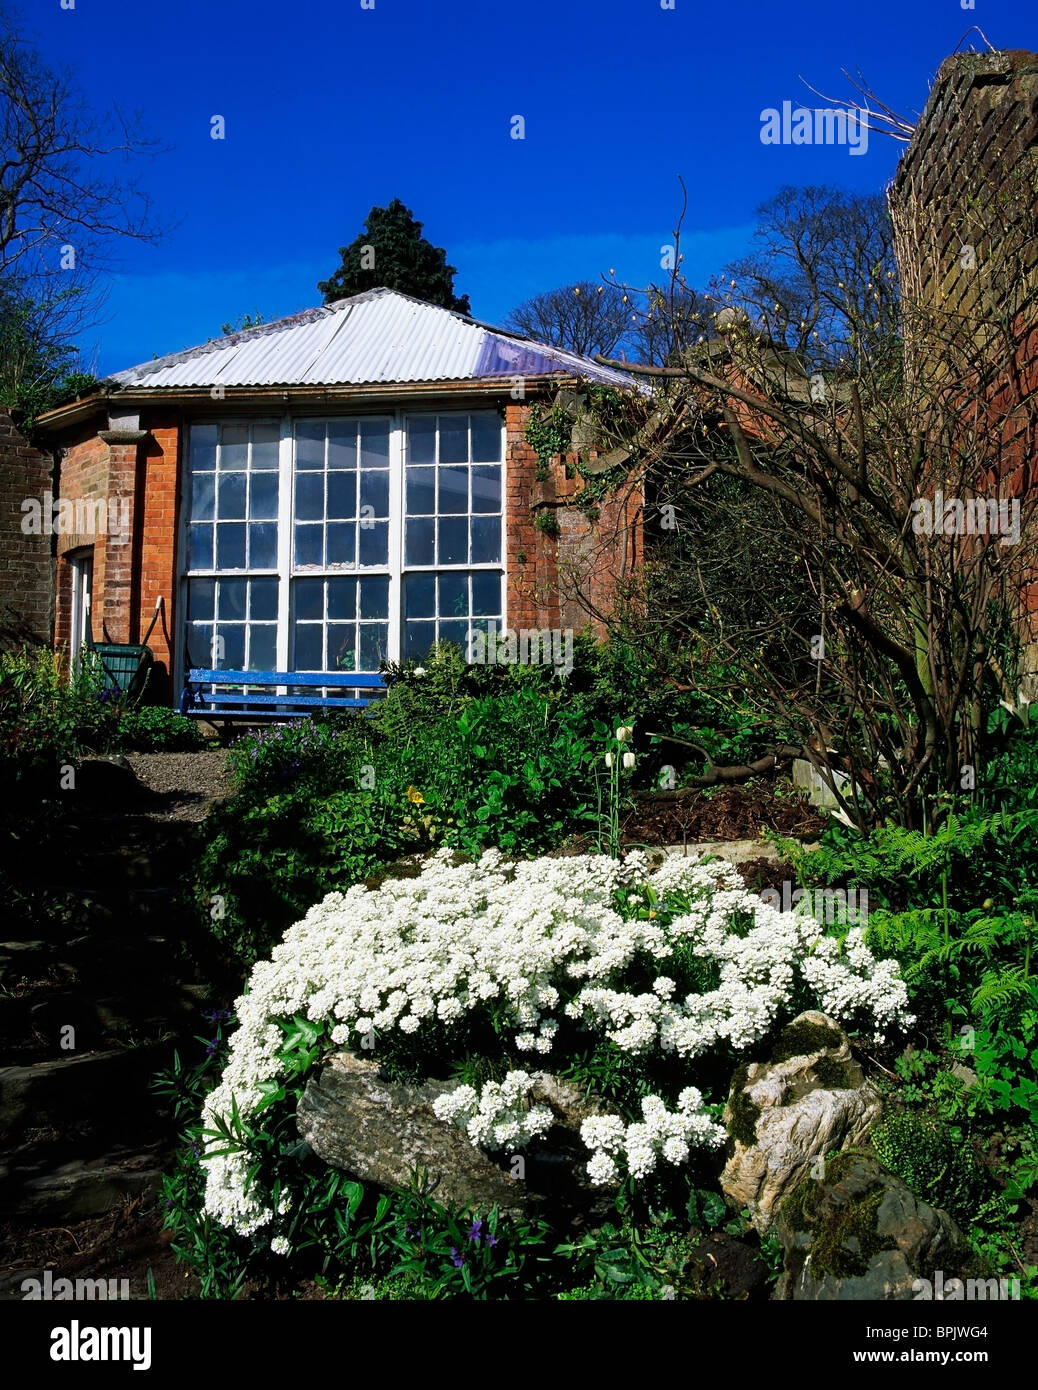 Drogheda Co Louth Ireland Potting Shed In Walled Garden